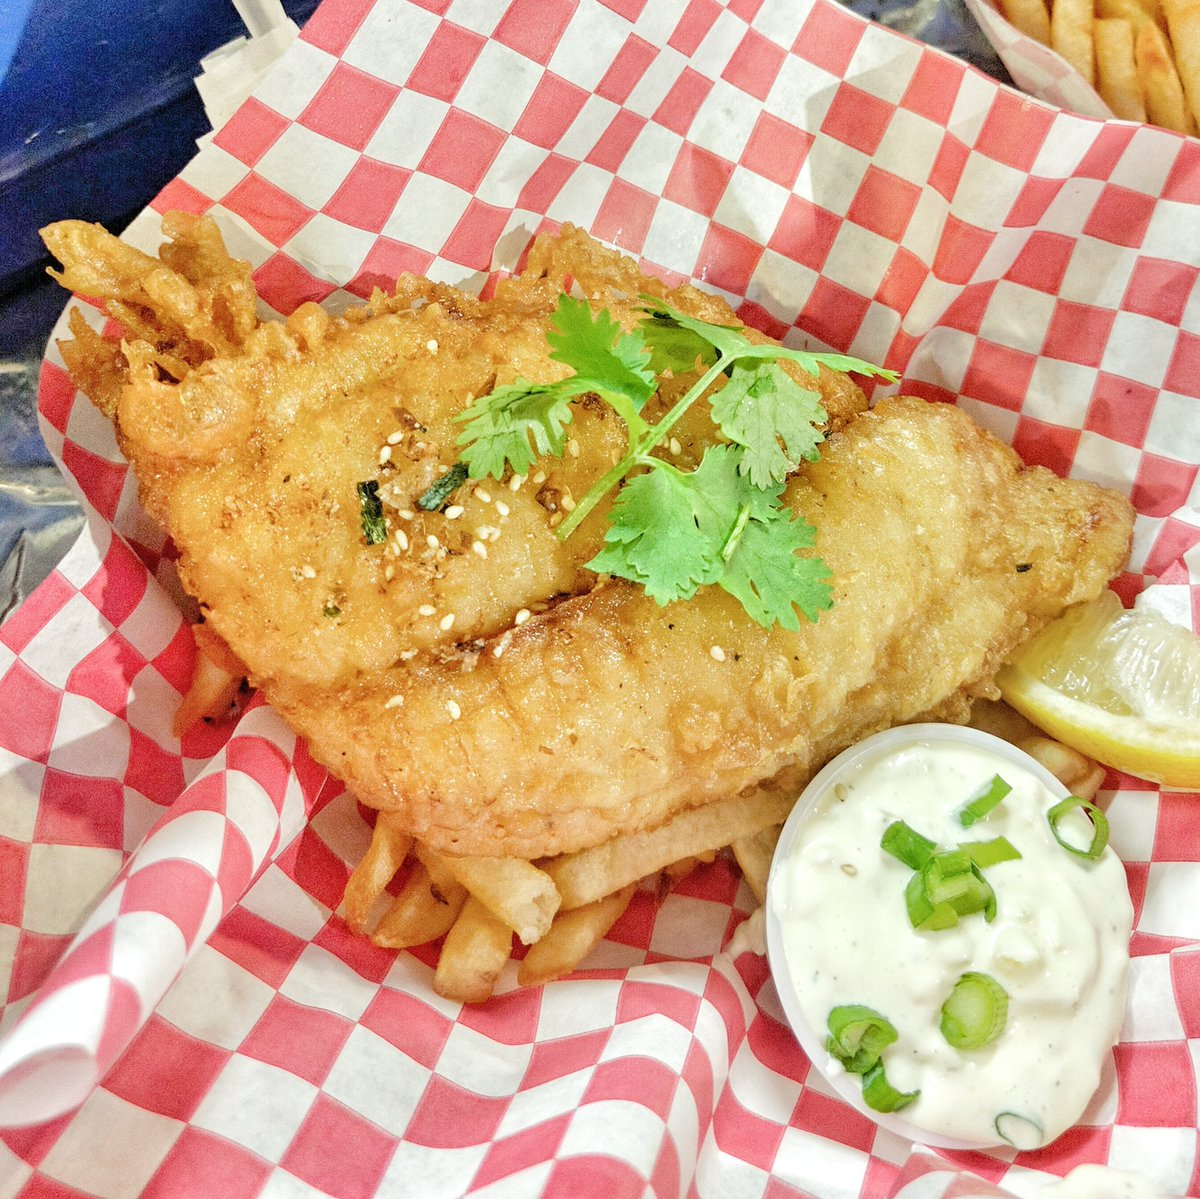 Fish and Chips from Koi Food Truck in Markham Ribfest in Toronto, Ontario